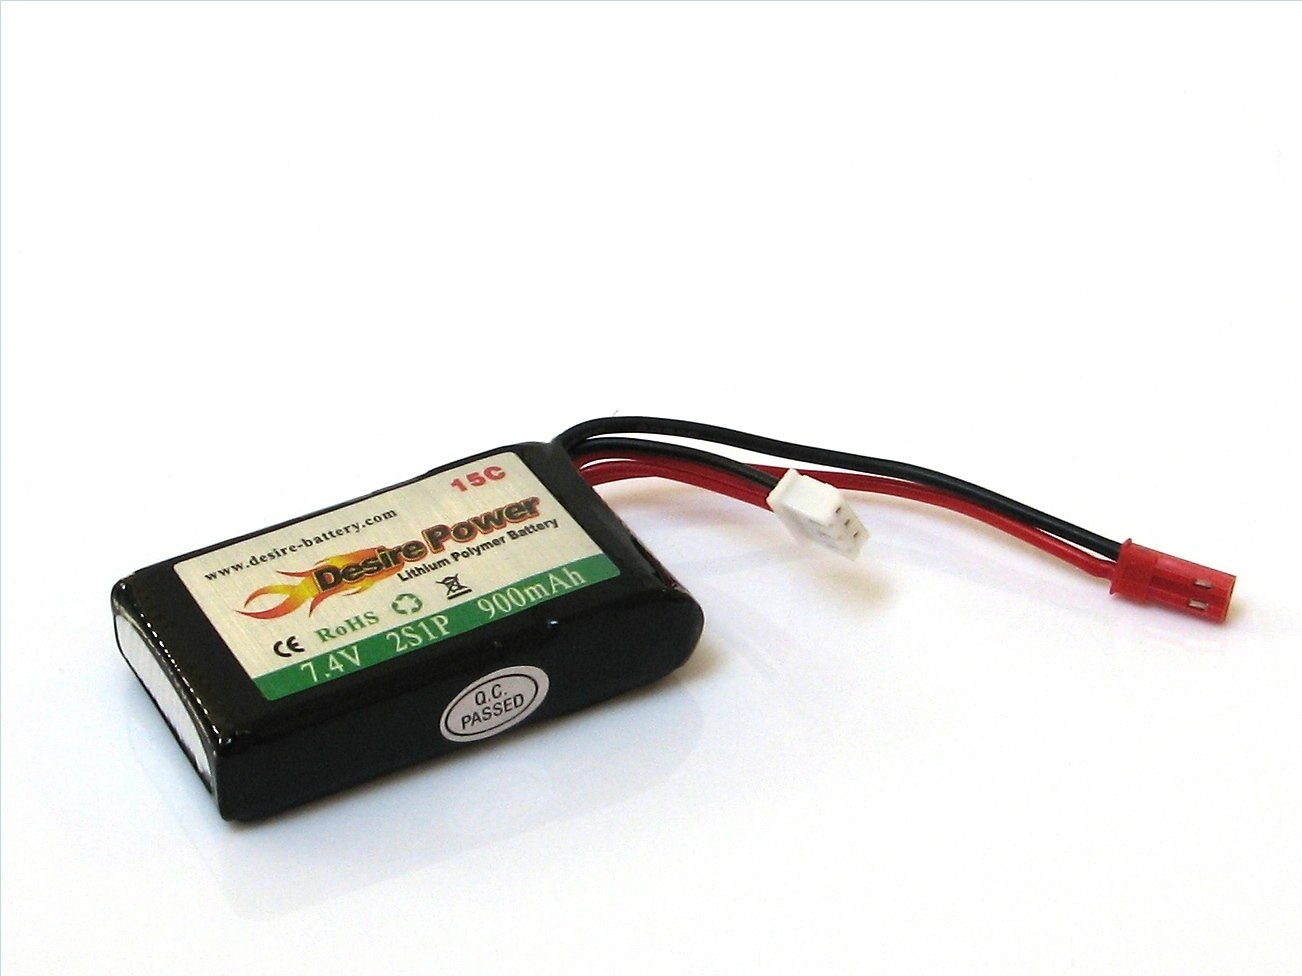 LiPo battery 7,4V 900mAh 15C JST